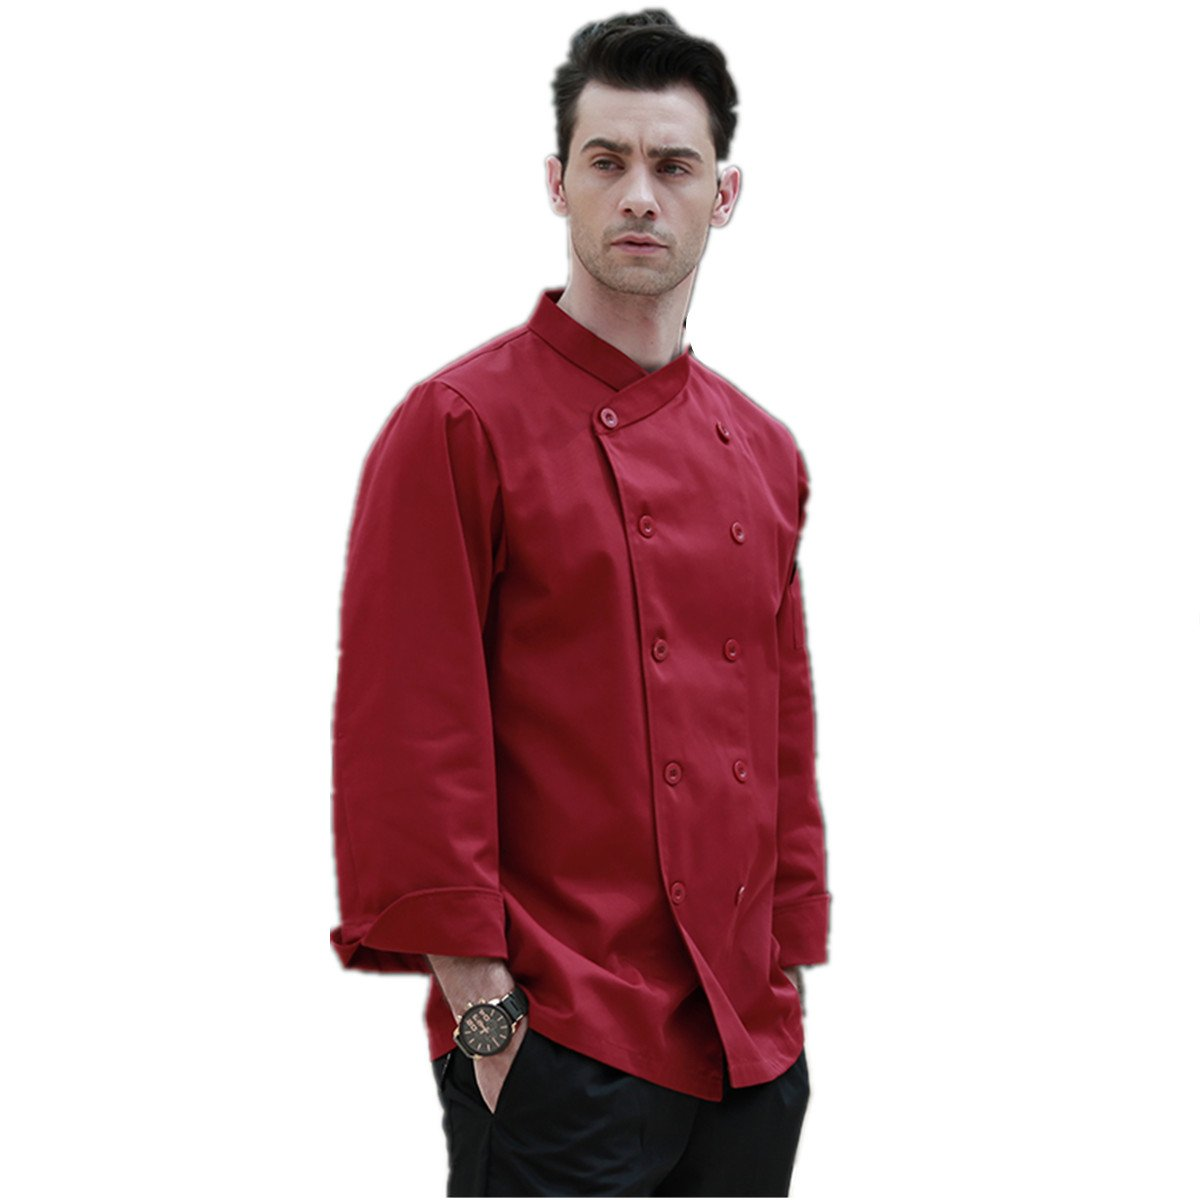 XINFU Men's Cloth Chef Long/Short Sleeve Hotel Western Restaurant Kitchen Clothes